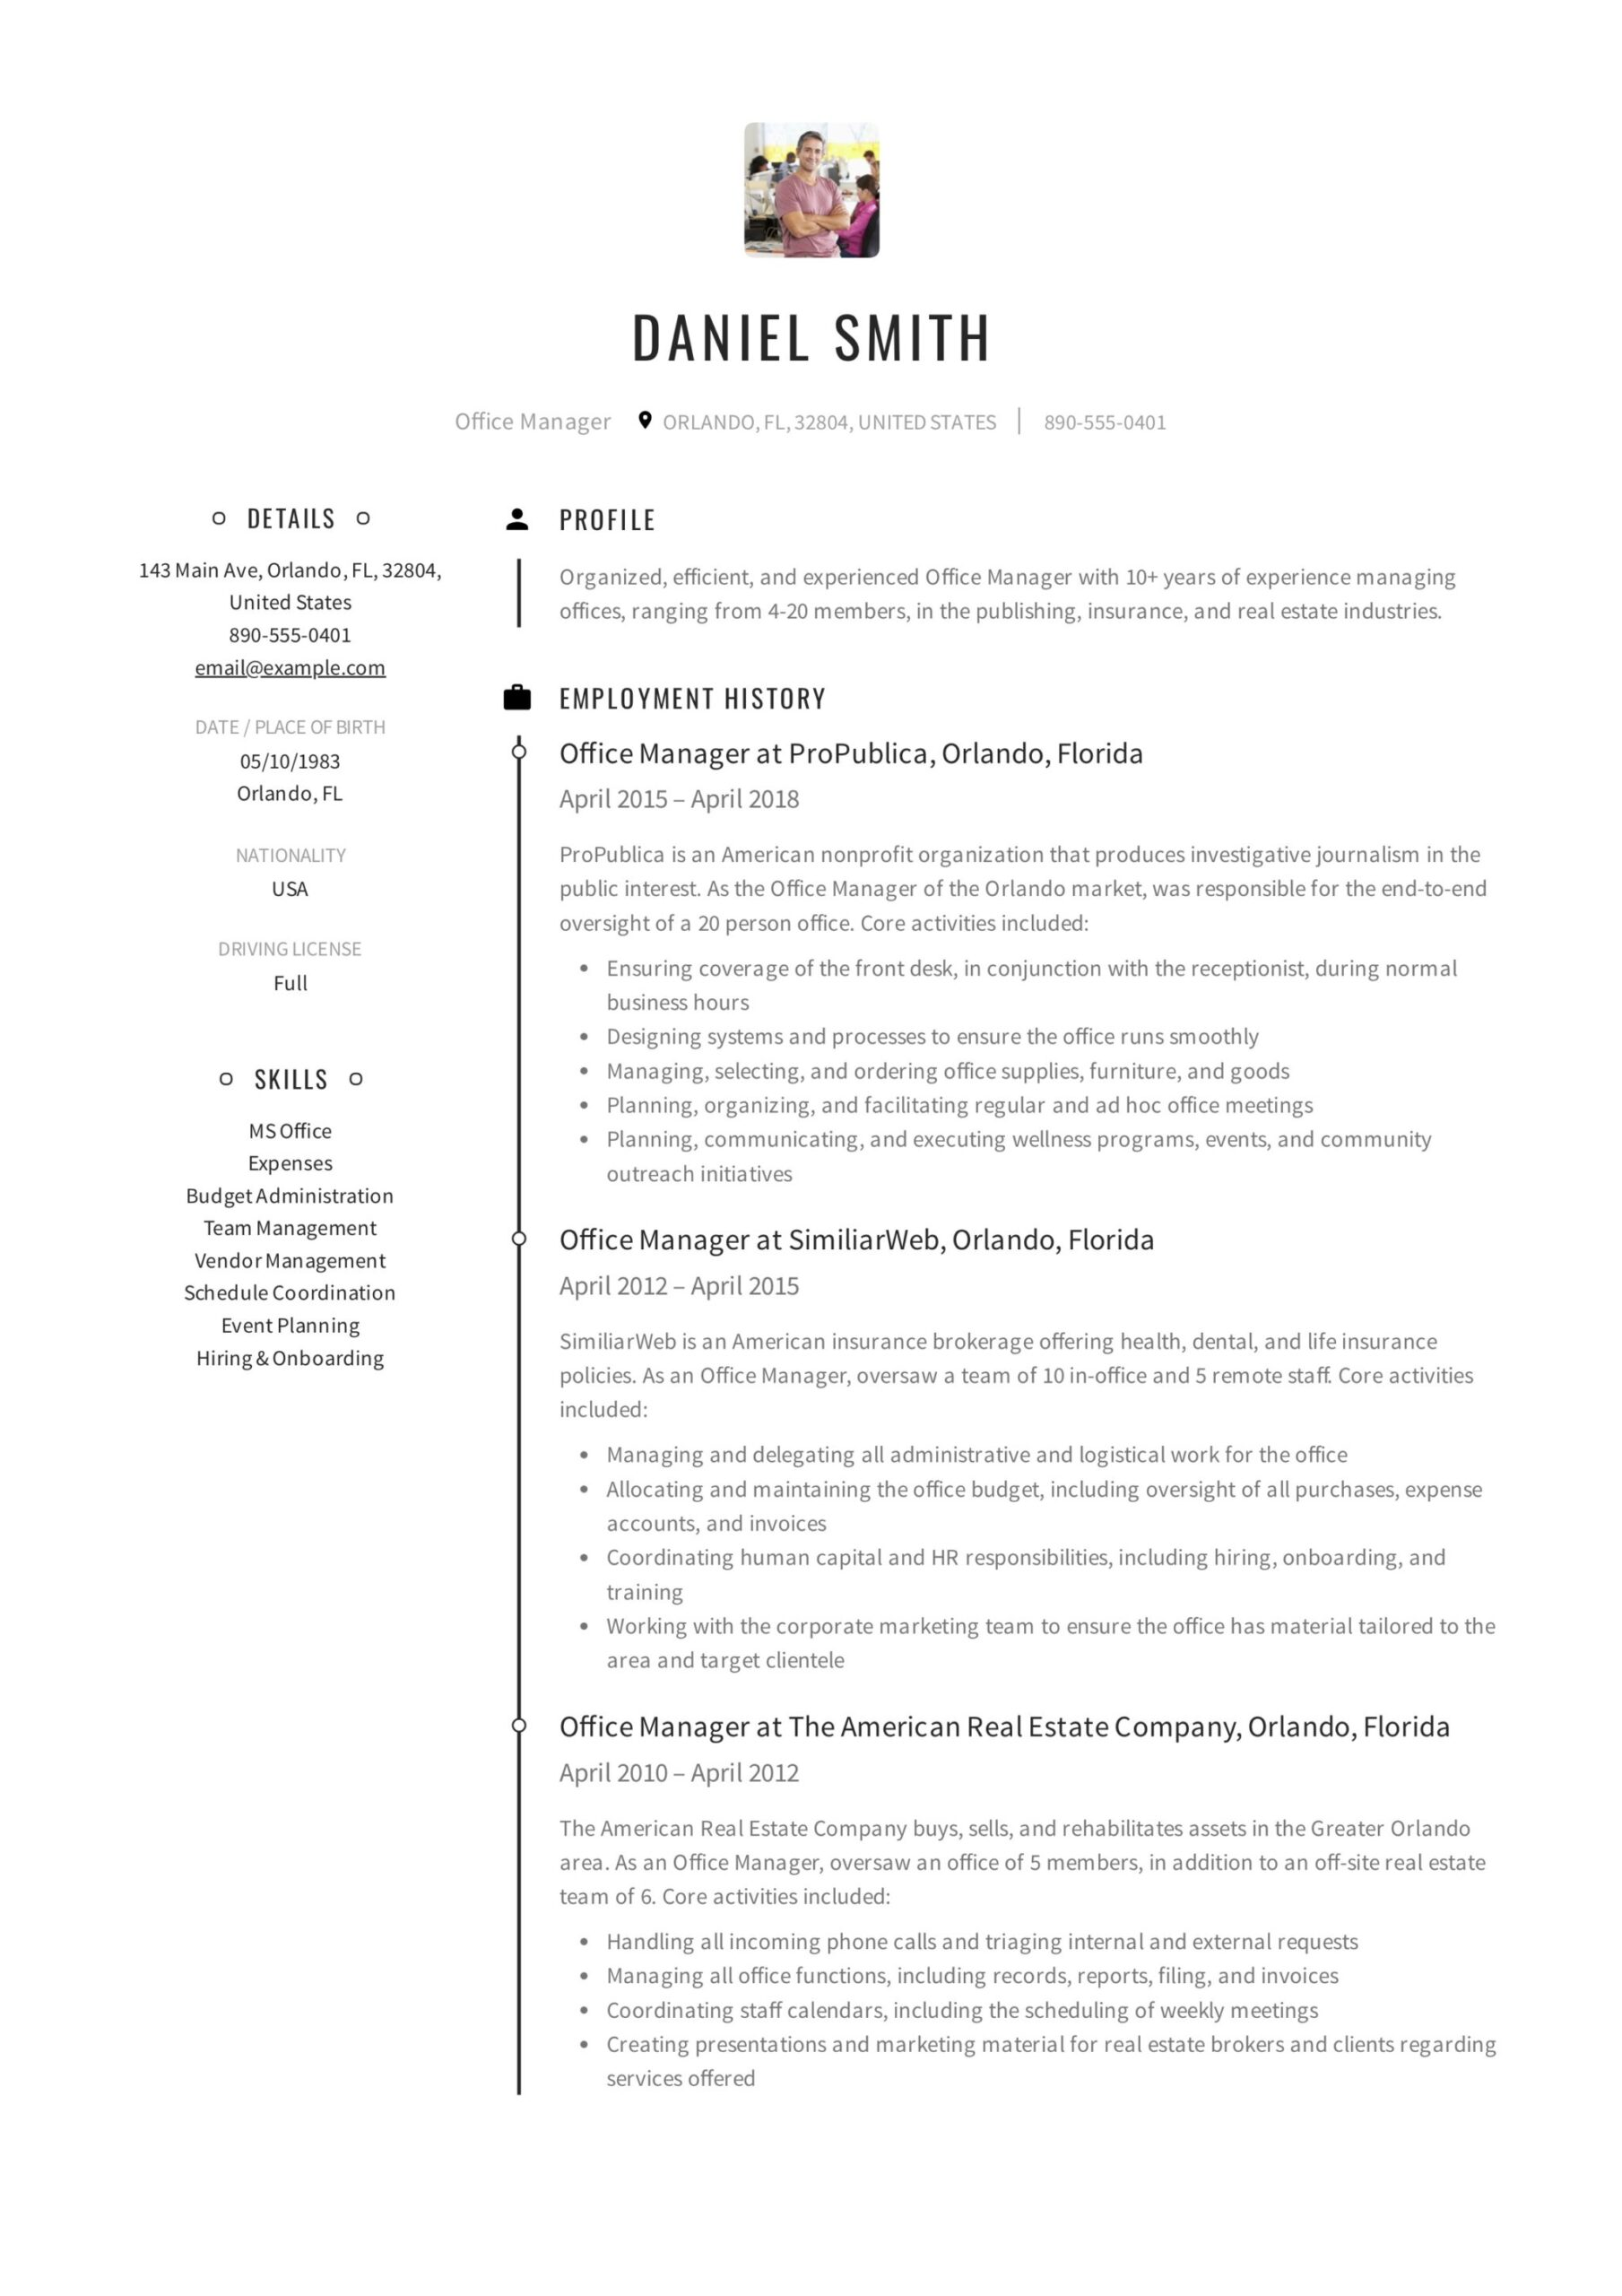 office manager resume guide samples pdf good examples example special education teacher Resume Good Resume Examples 2020